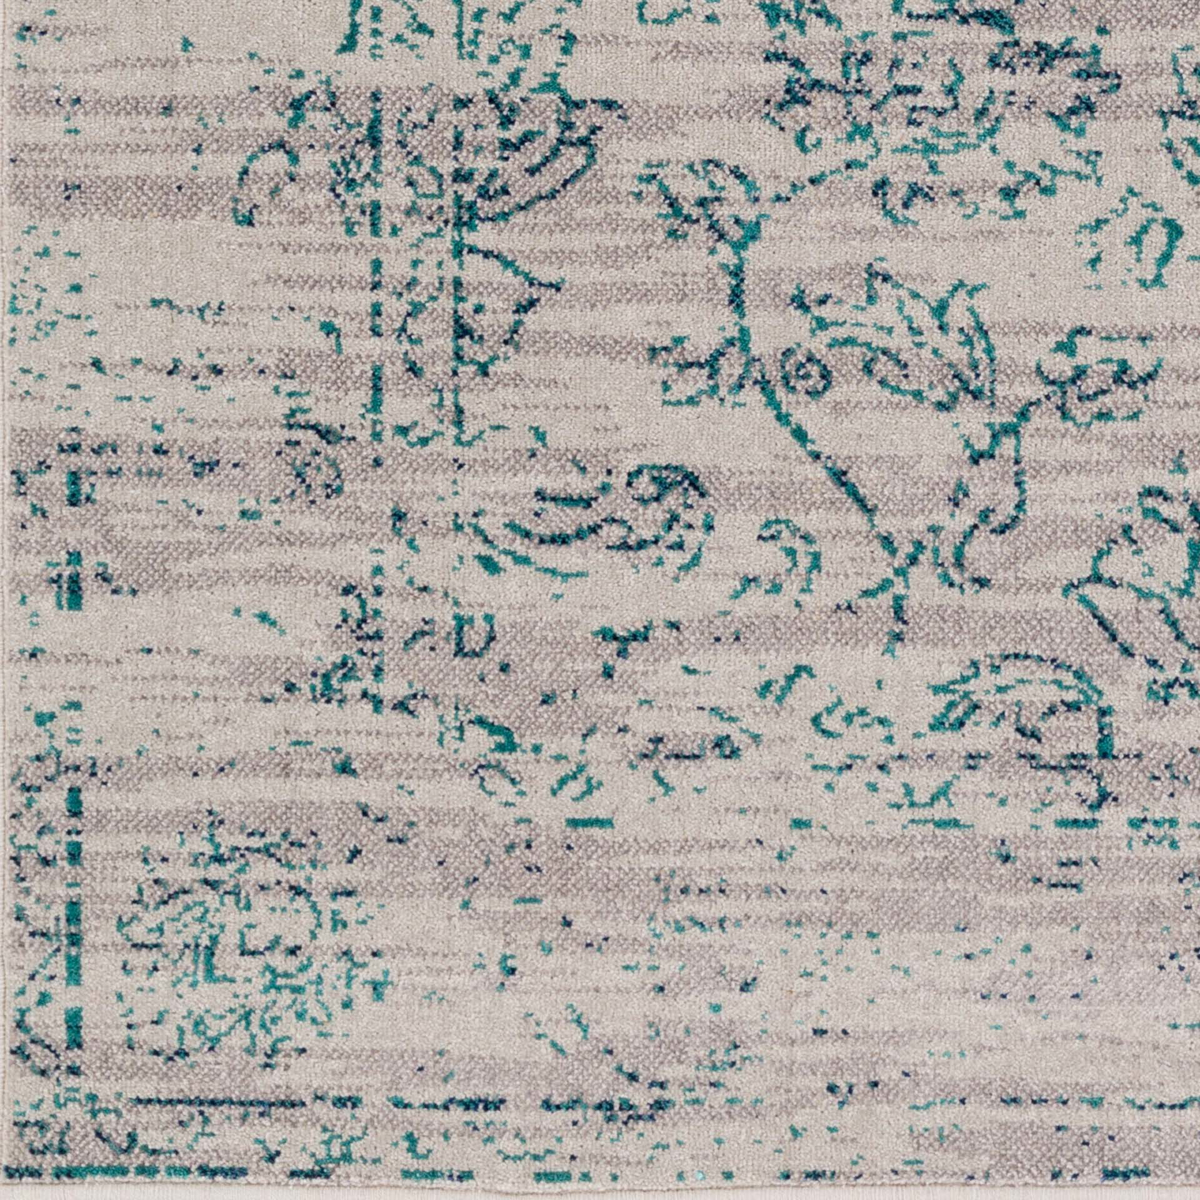 Machine made area rug from Israel in gray with teal flower accents - Close Up